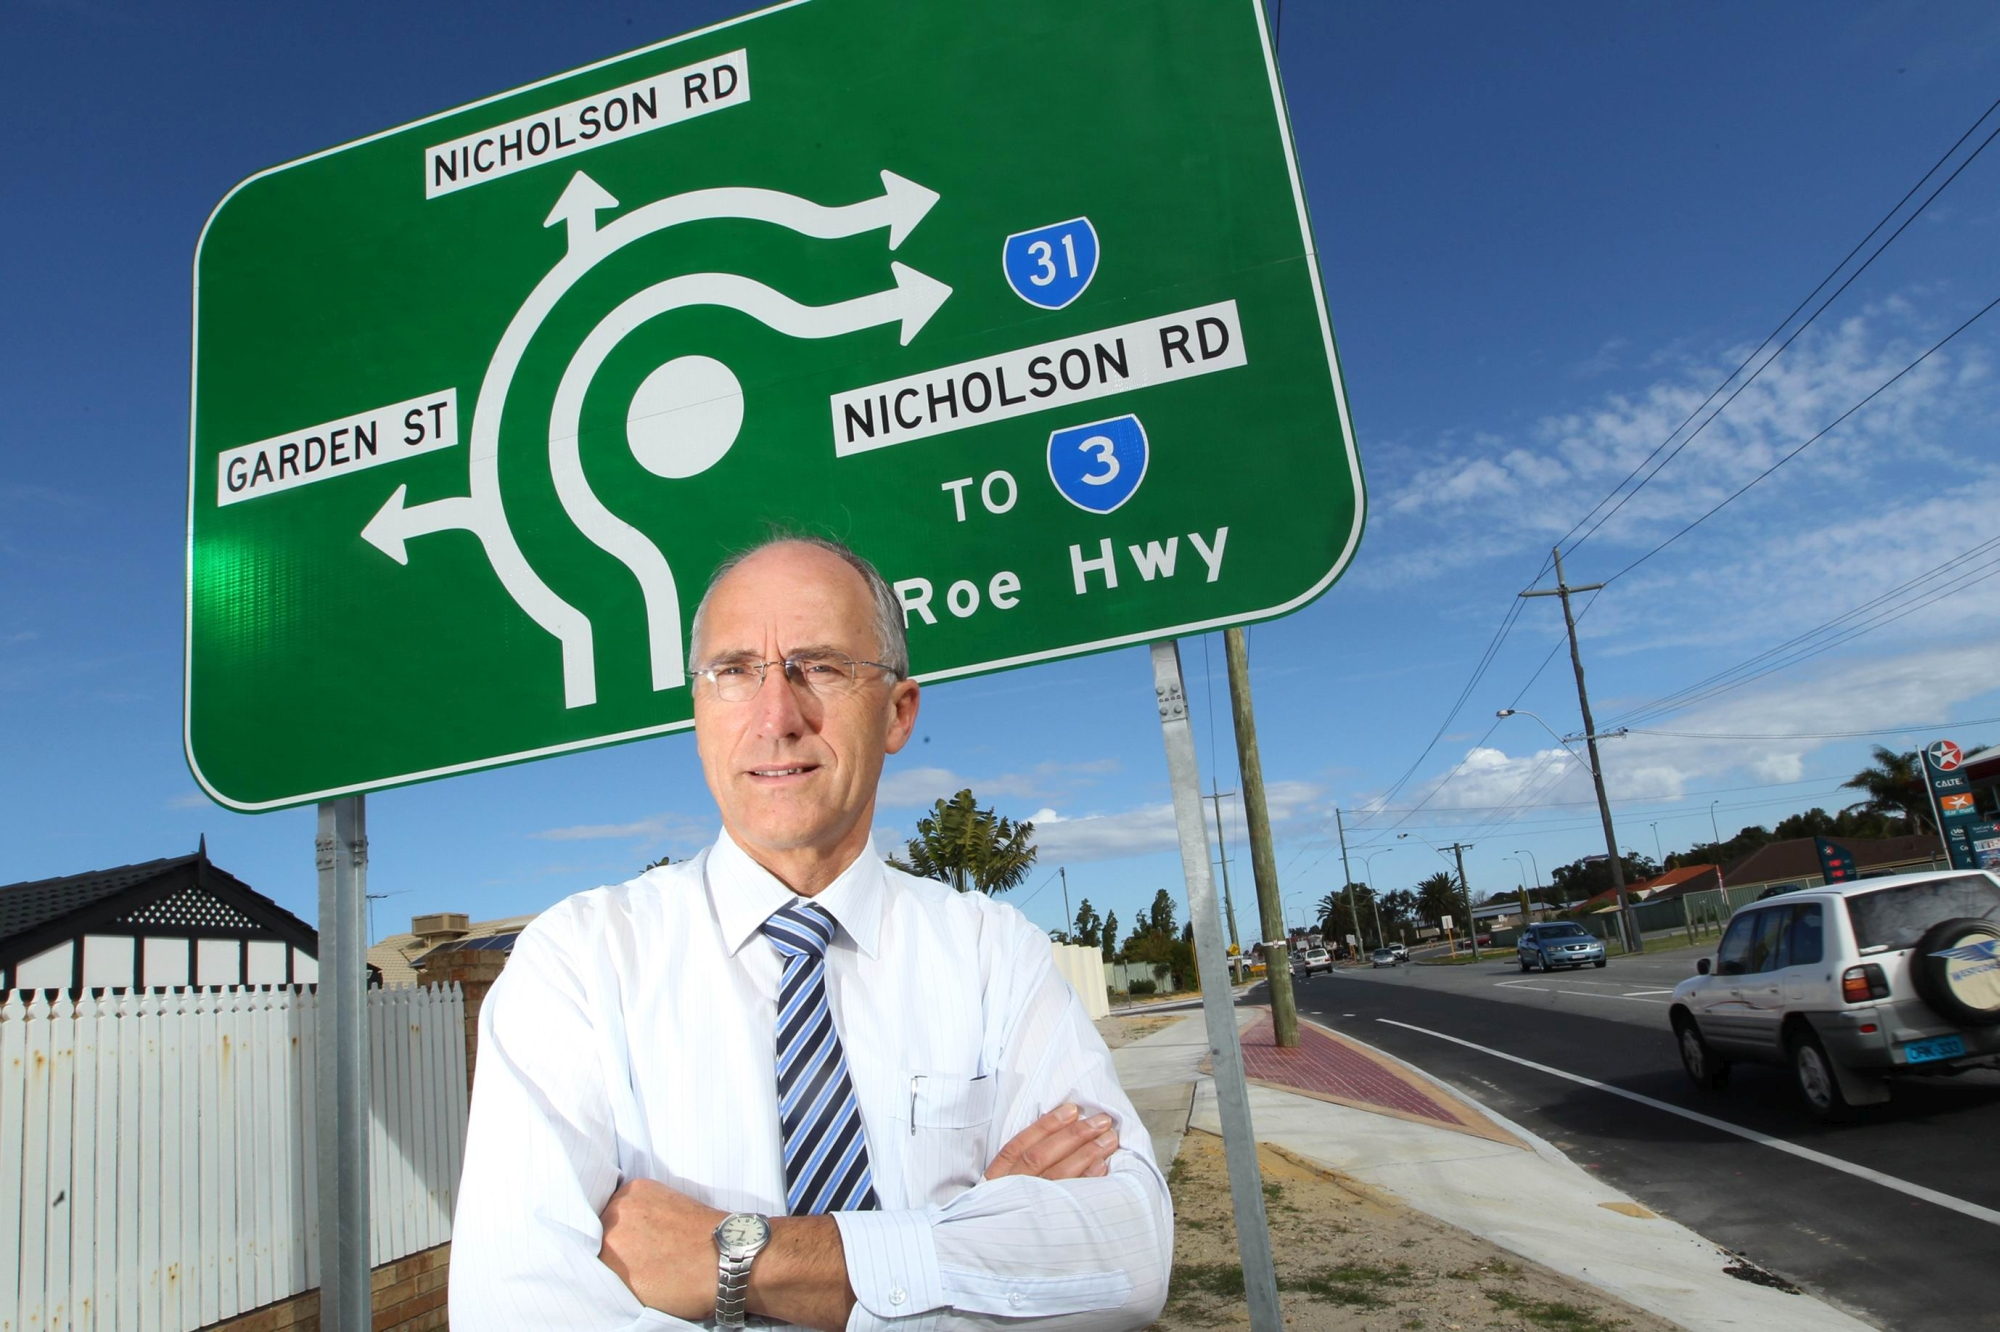 Southern River MLA Peter Abetz at the intersection, which he says is as dangerous as ever after roundabout upgrades. Picture: Marcelo Palacios www.communitypix.com.au d402786